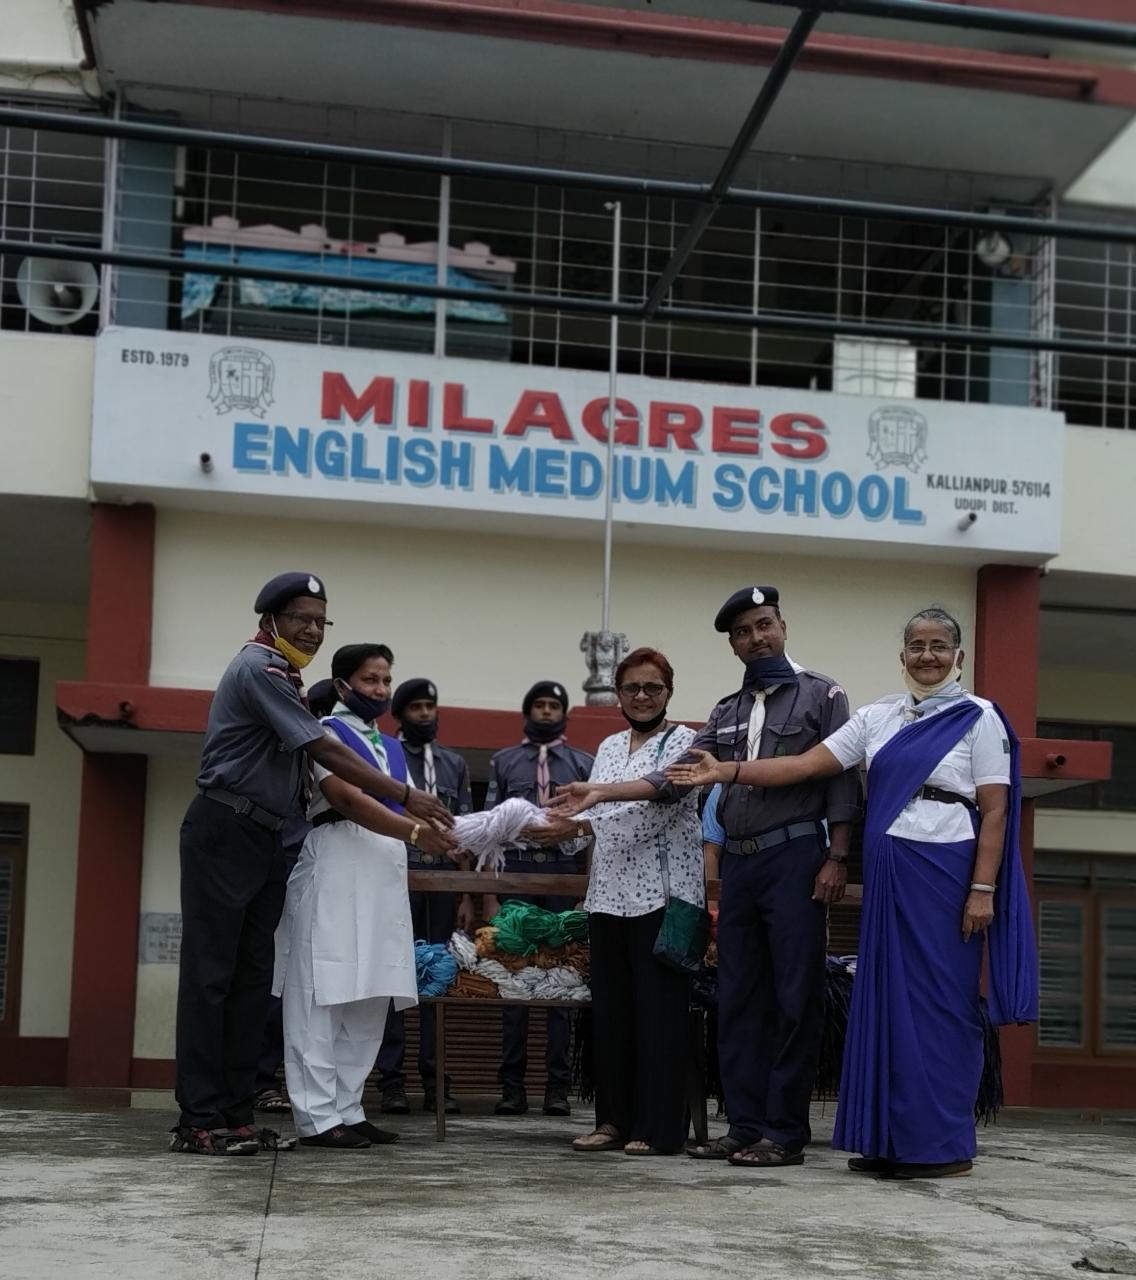 The Scouts and Guides of Milagres Eng. Med. School hands over 2020 masks to local association